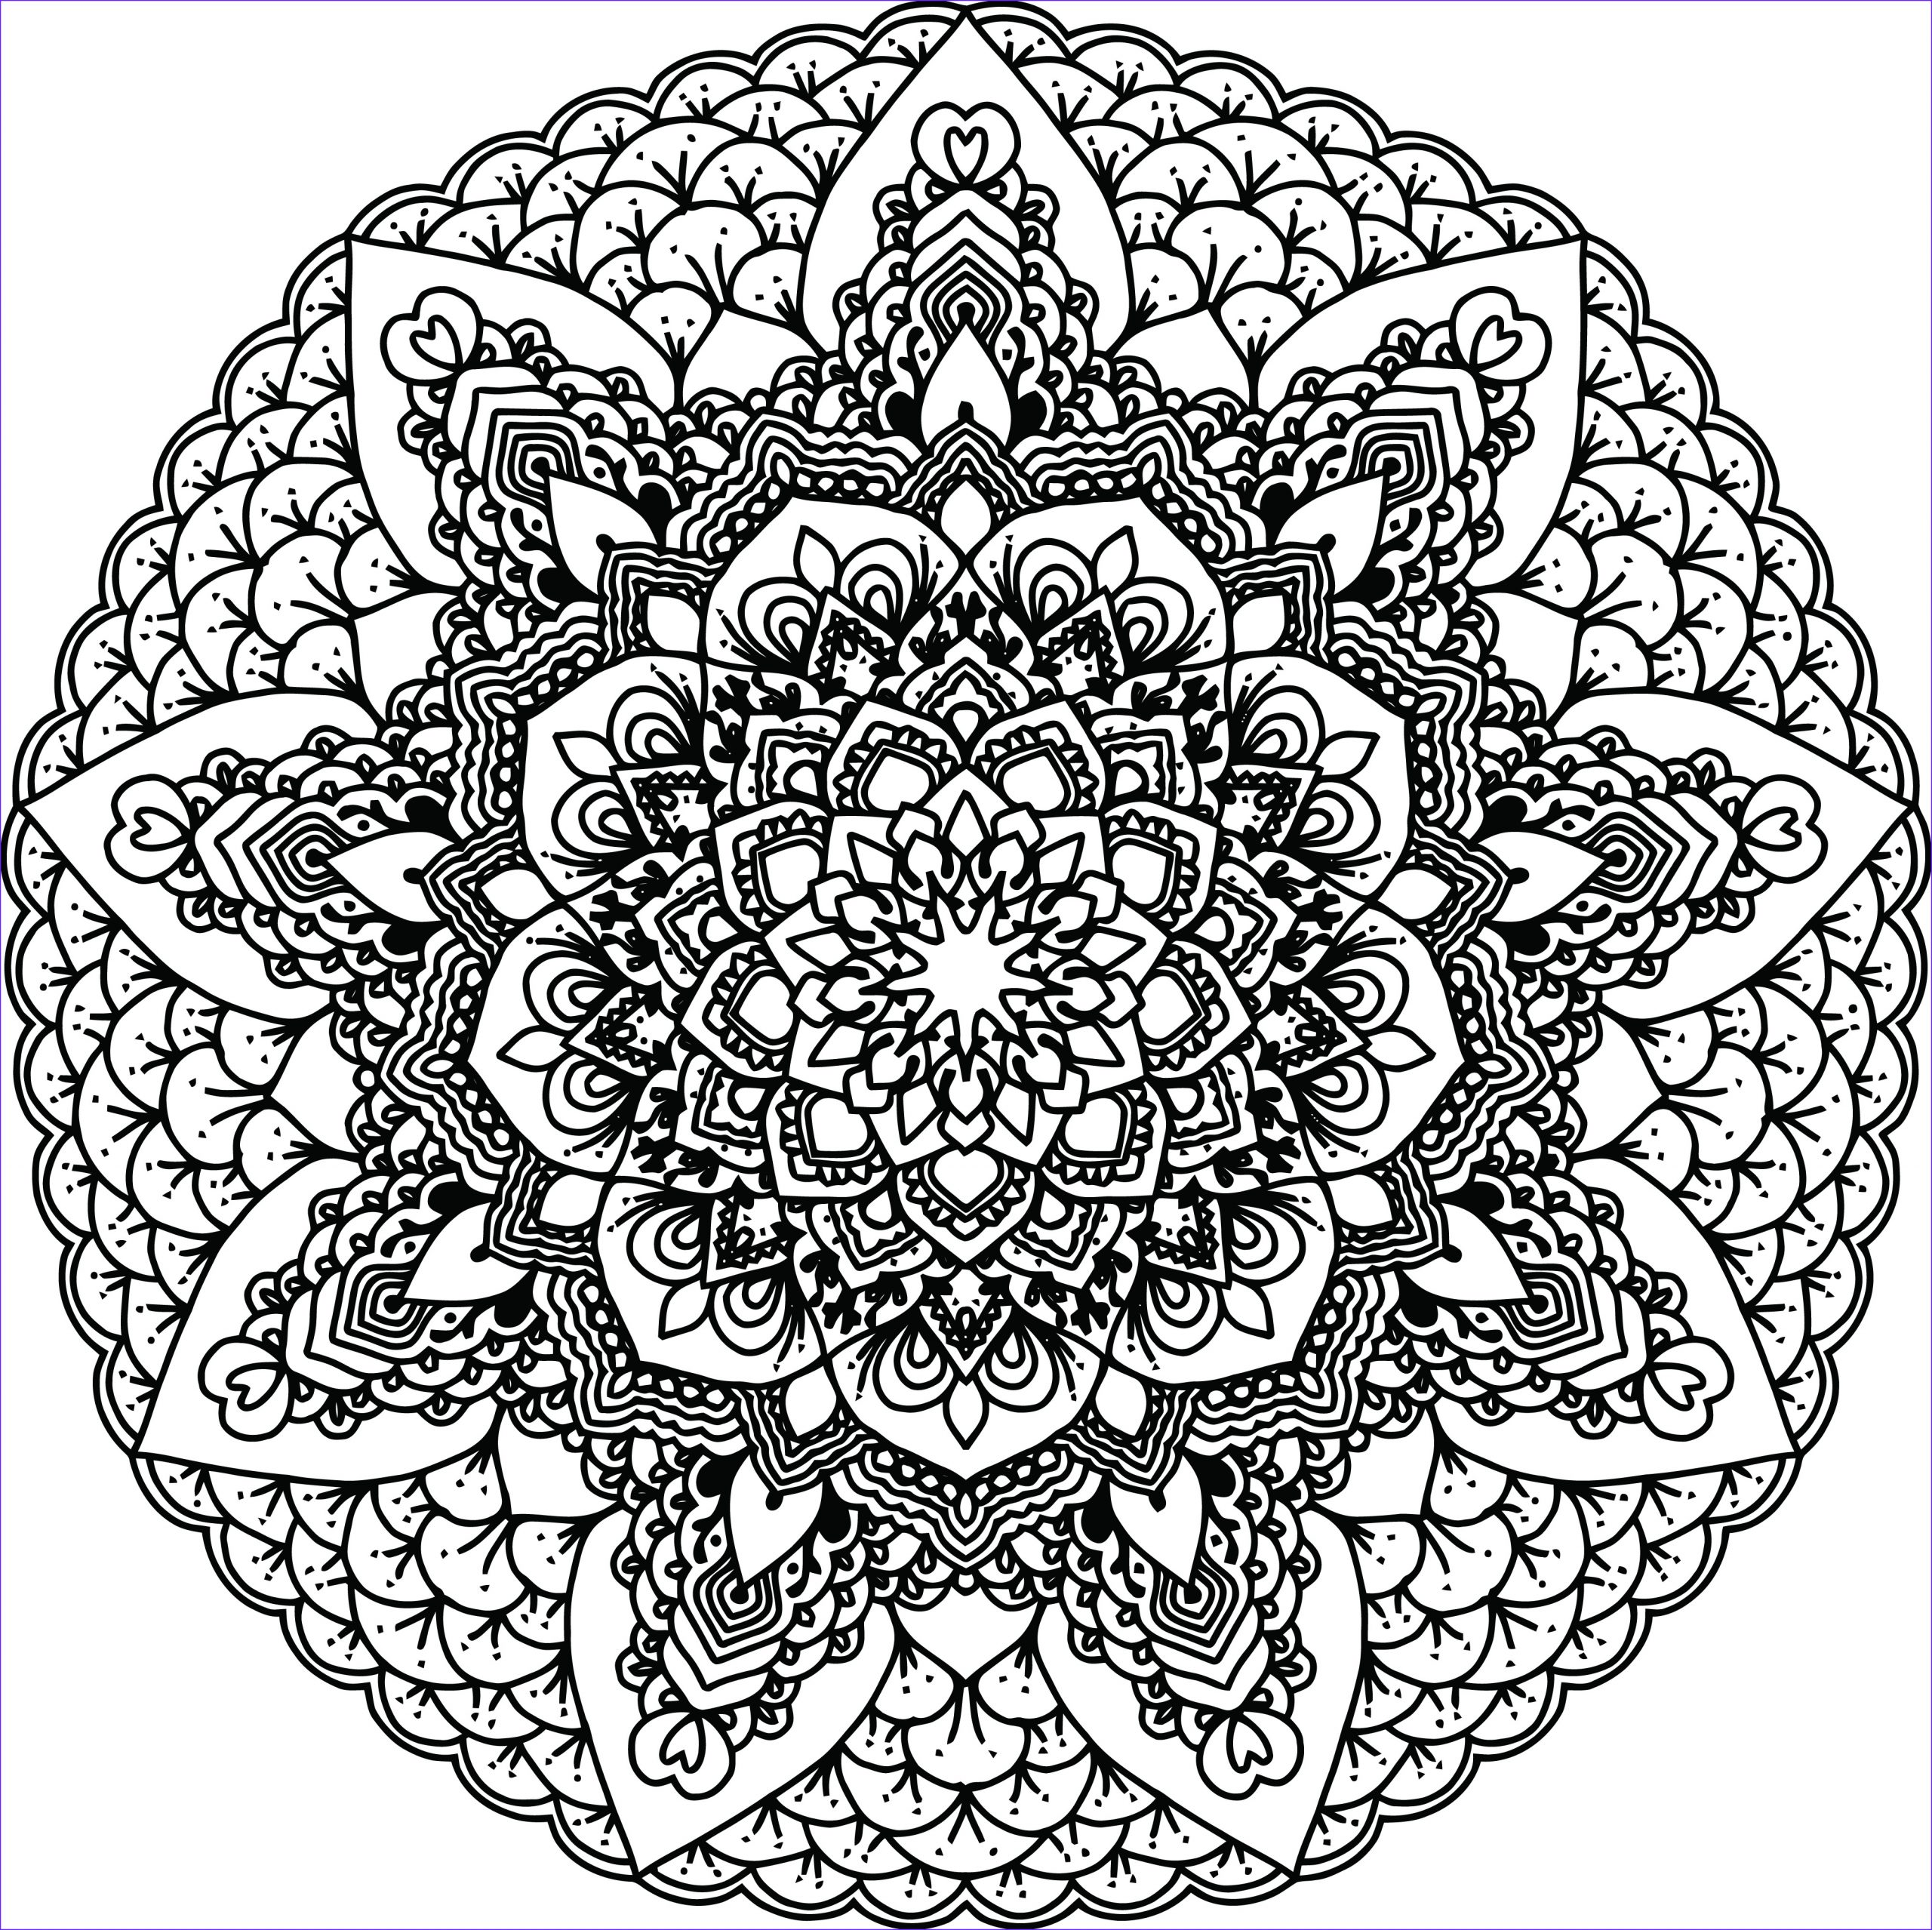 Free Mandala Coloring Book Cool Stock Free Clipart A Black and White Adult Coloring Page